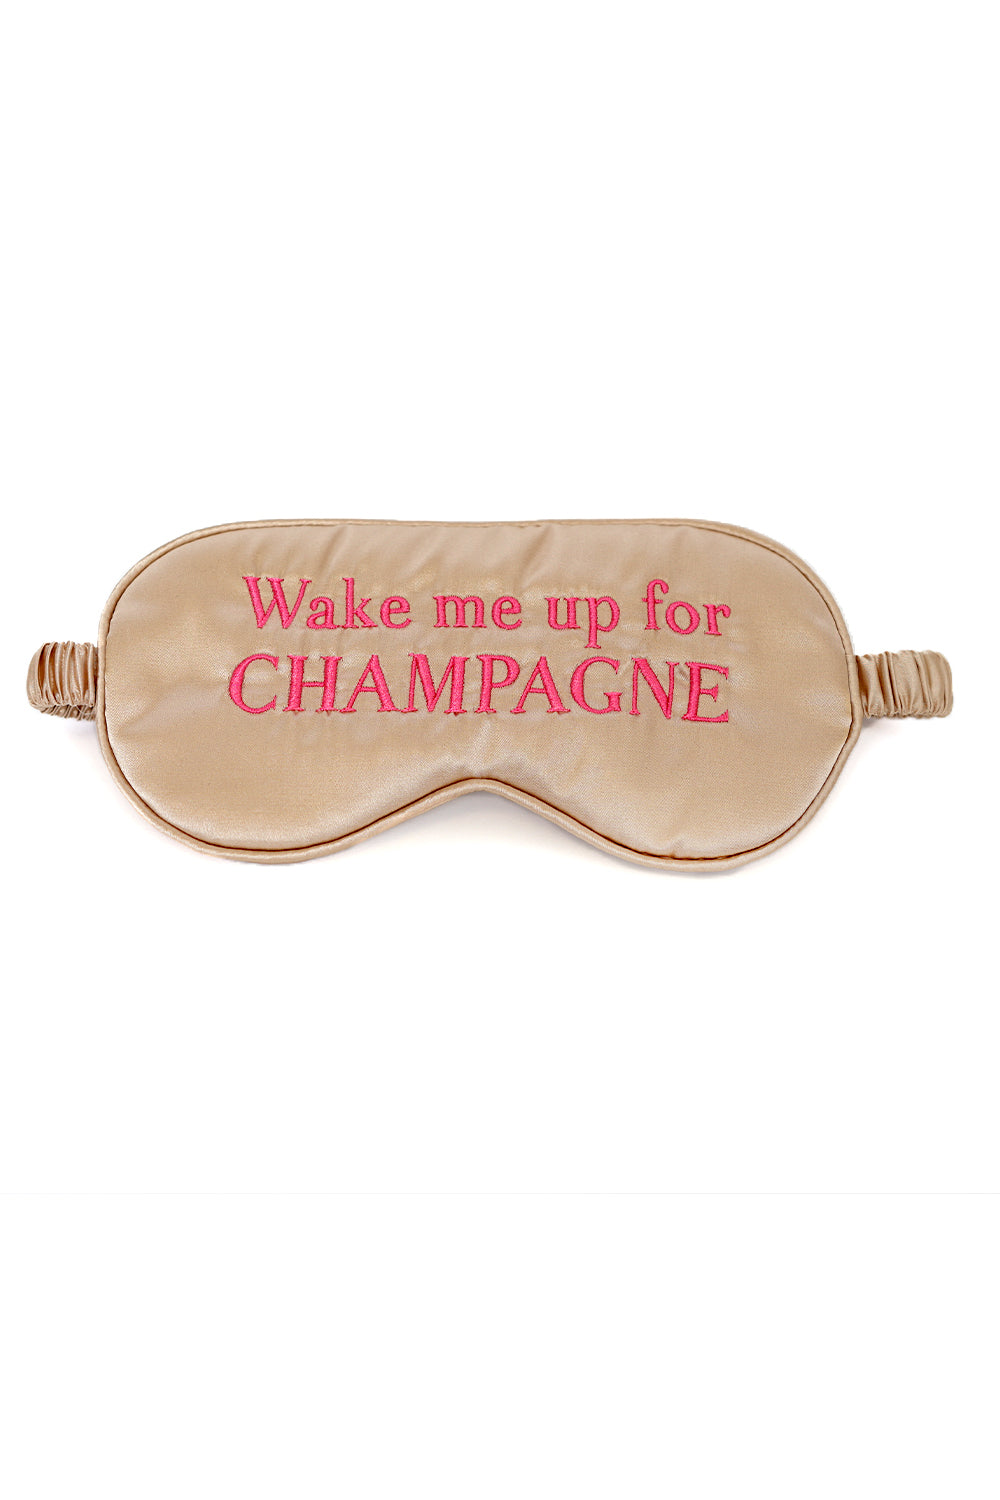 DREAMER EYE MASK -Wake Up Champagne